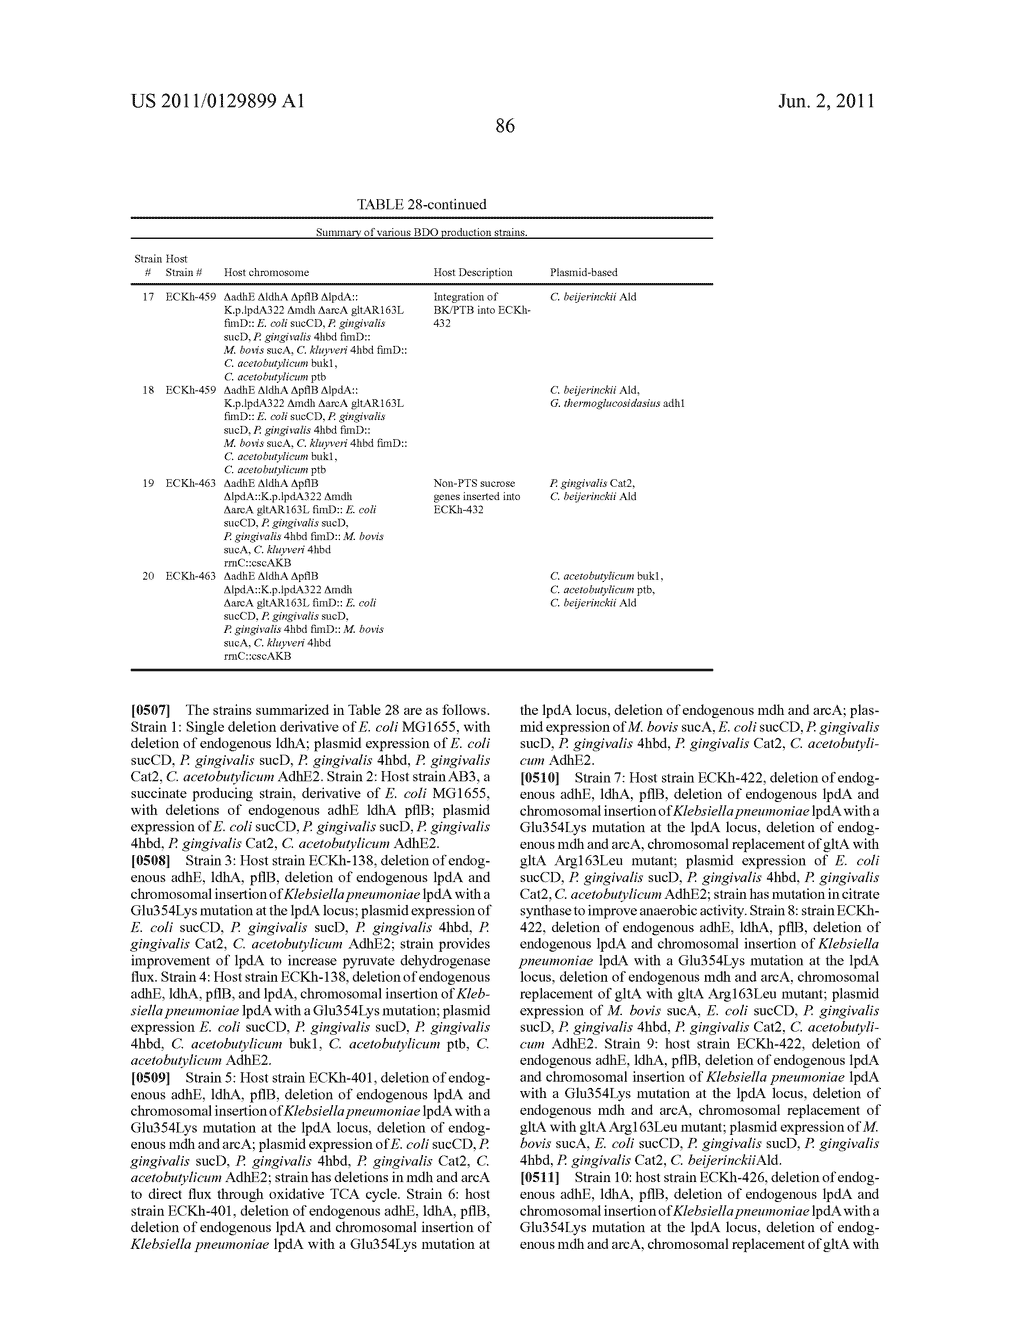 MICROORGANISMS FOR THE PRODUCTION OF 1,4-BUTANEDIOL, 4-HYDROXYBUTANAL,     4-HYDROXYBUTYRYL-COA, PUTRESCINE AND RELATED COMPOUNDS, AND METHODS     RELATED THERETO - diagram, schematic, and image 155